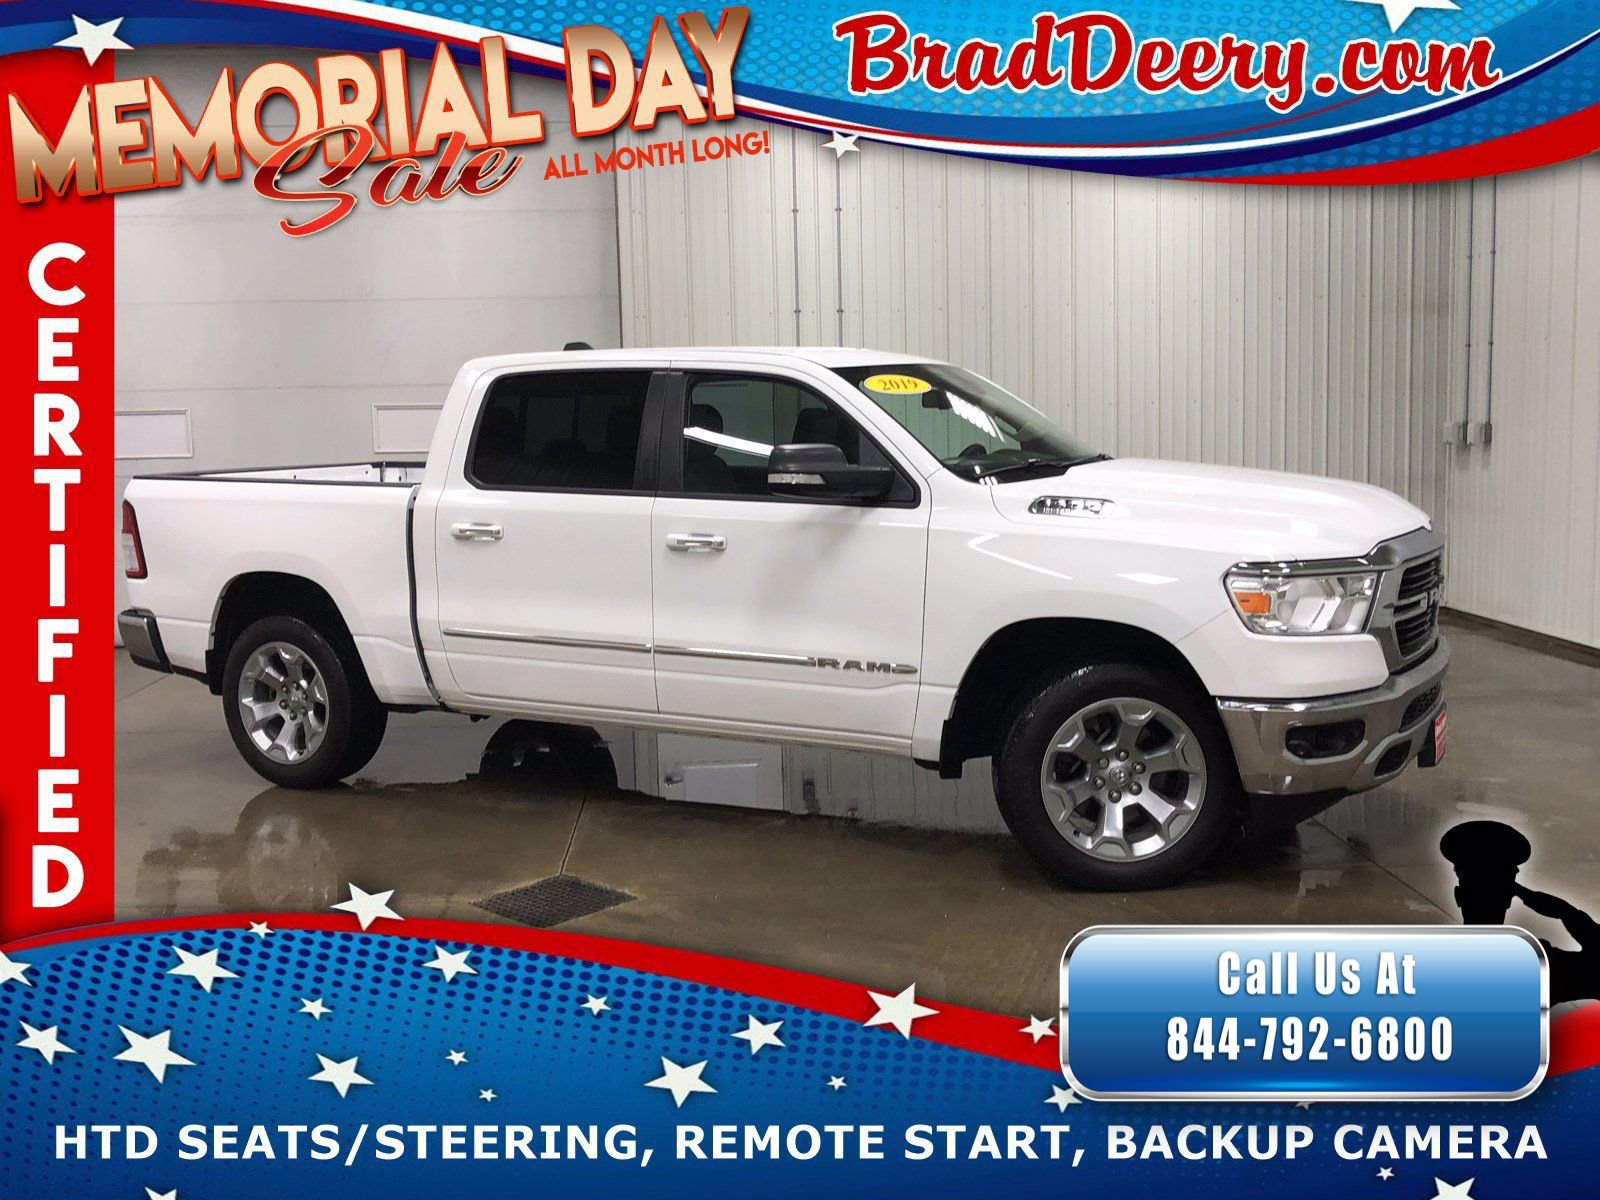 2019 Ram 1500 Big Horn Crew Cab 4X4 ** RAM CERTIFIED ** w/ Heated Seats, R.Start & Big Horn Level 2 Equip. Group